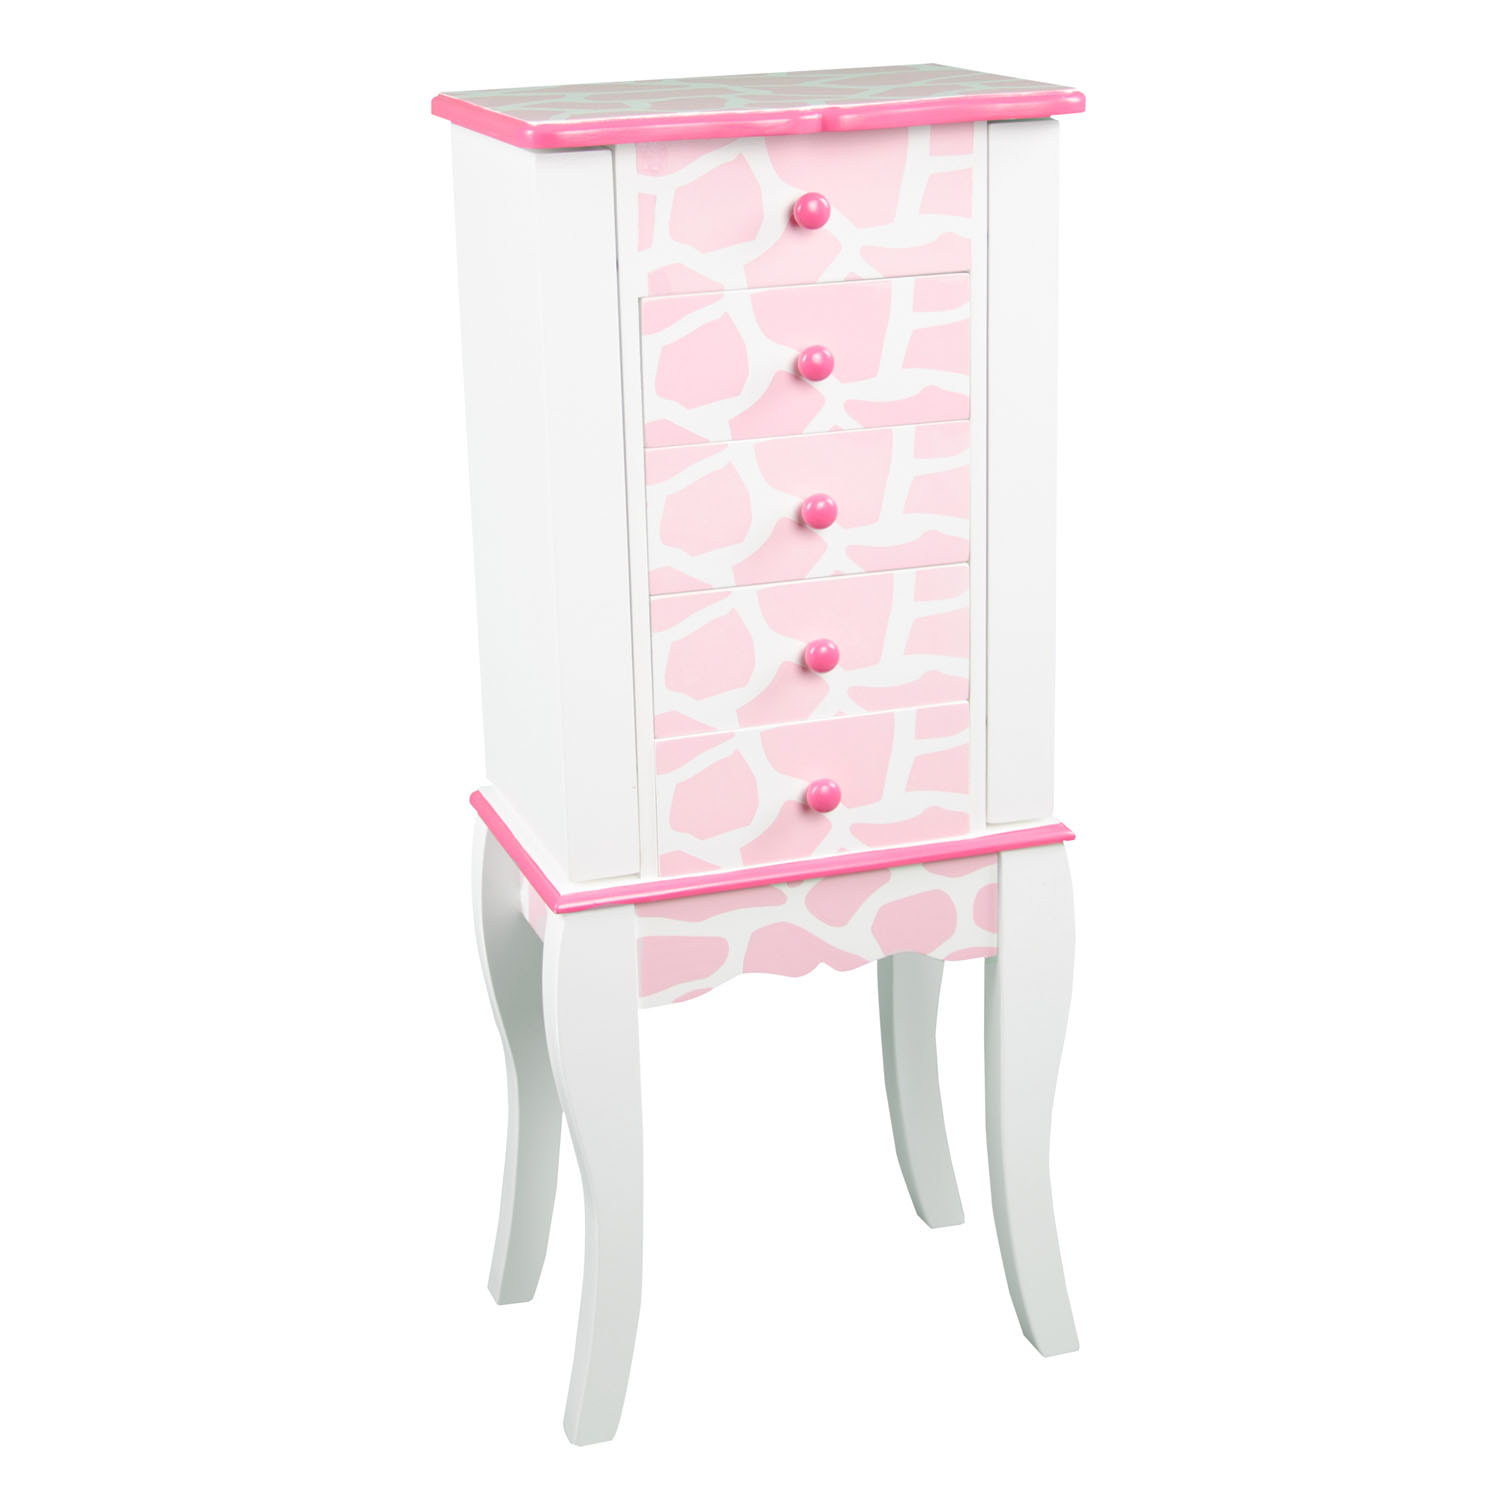 Teamson Kids Dollhouse Furniture Fashion Prints Jewelry Chest Armoire - Giraffe (Baby Pink / White)